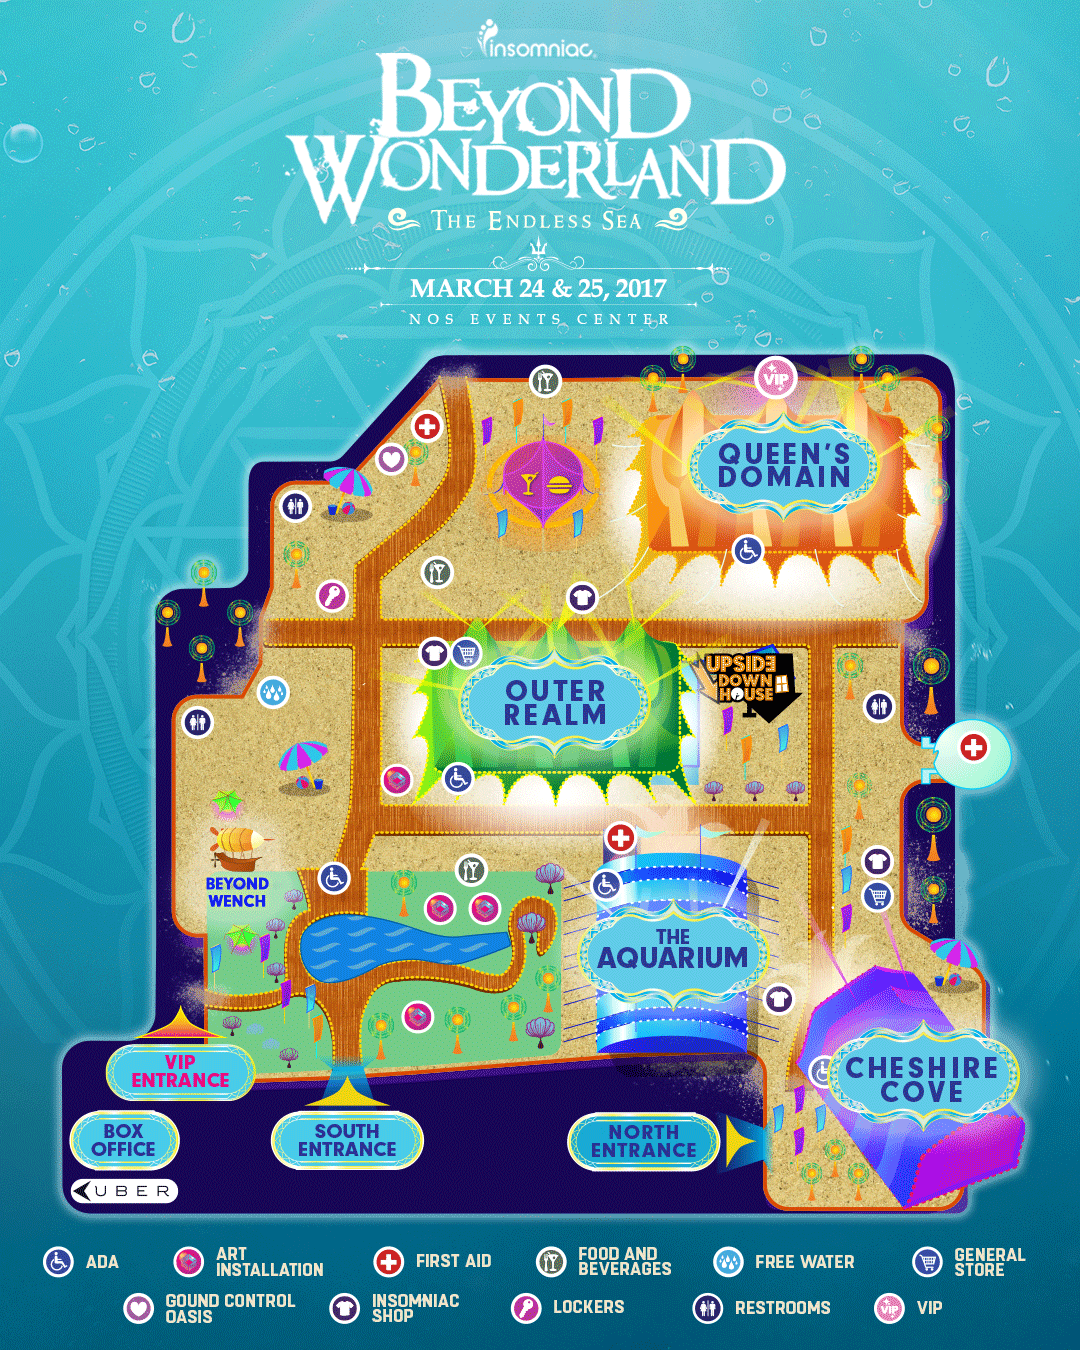 beyond_wonderland_2017_msc_festival_map_1080x1350_r06